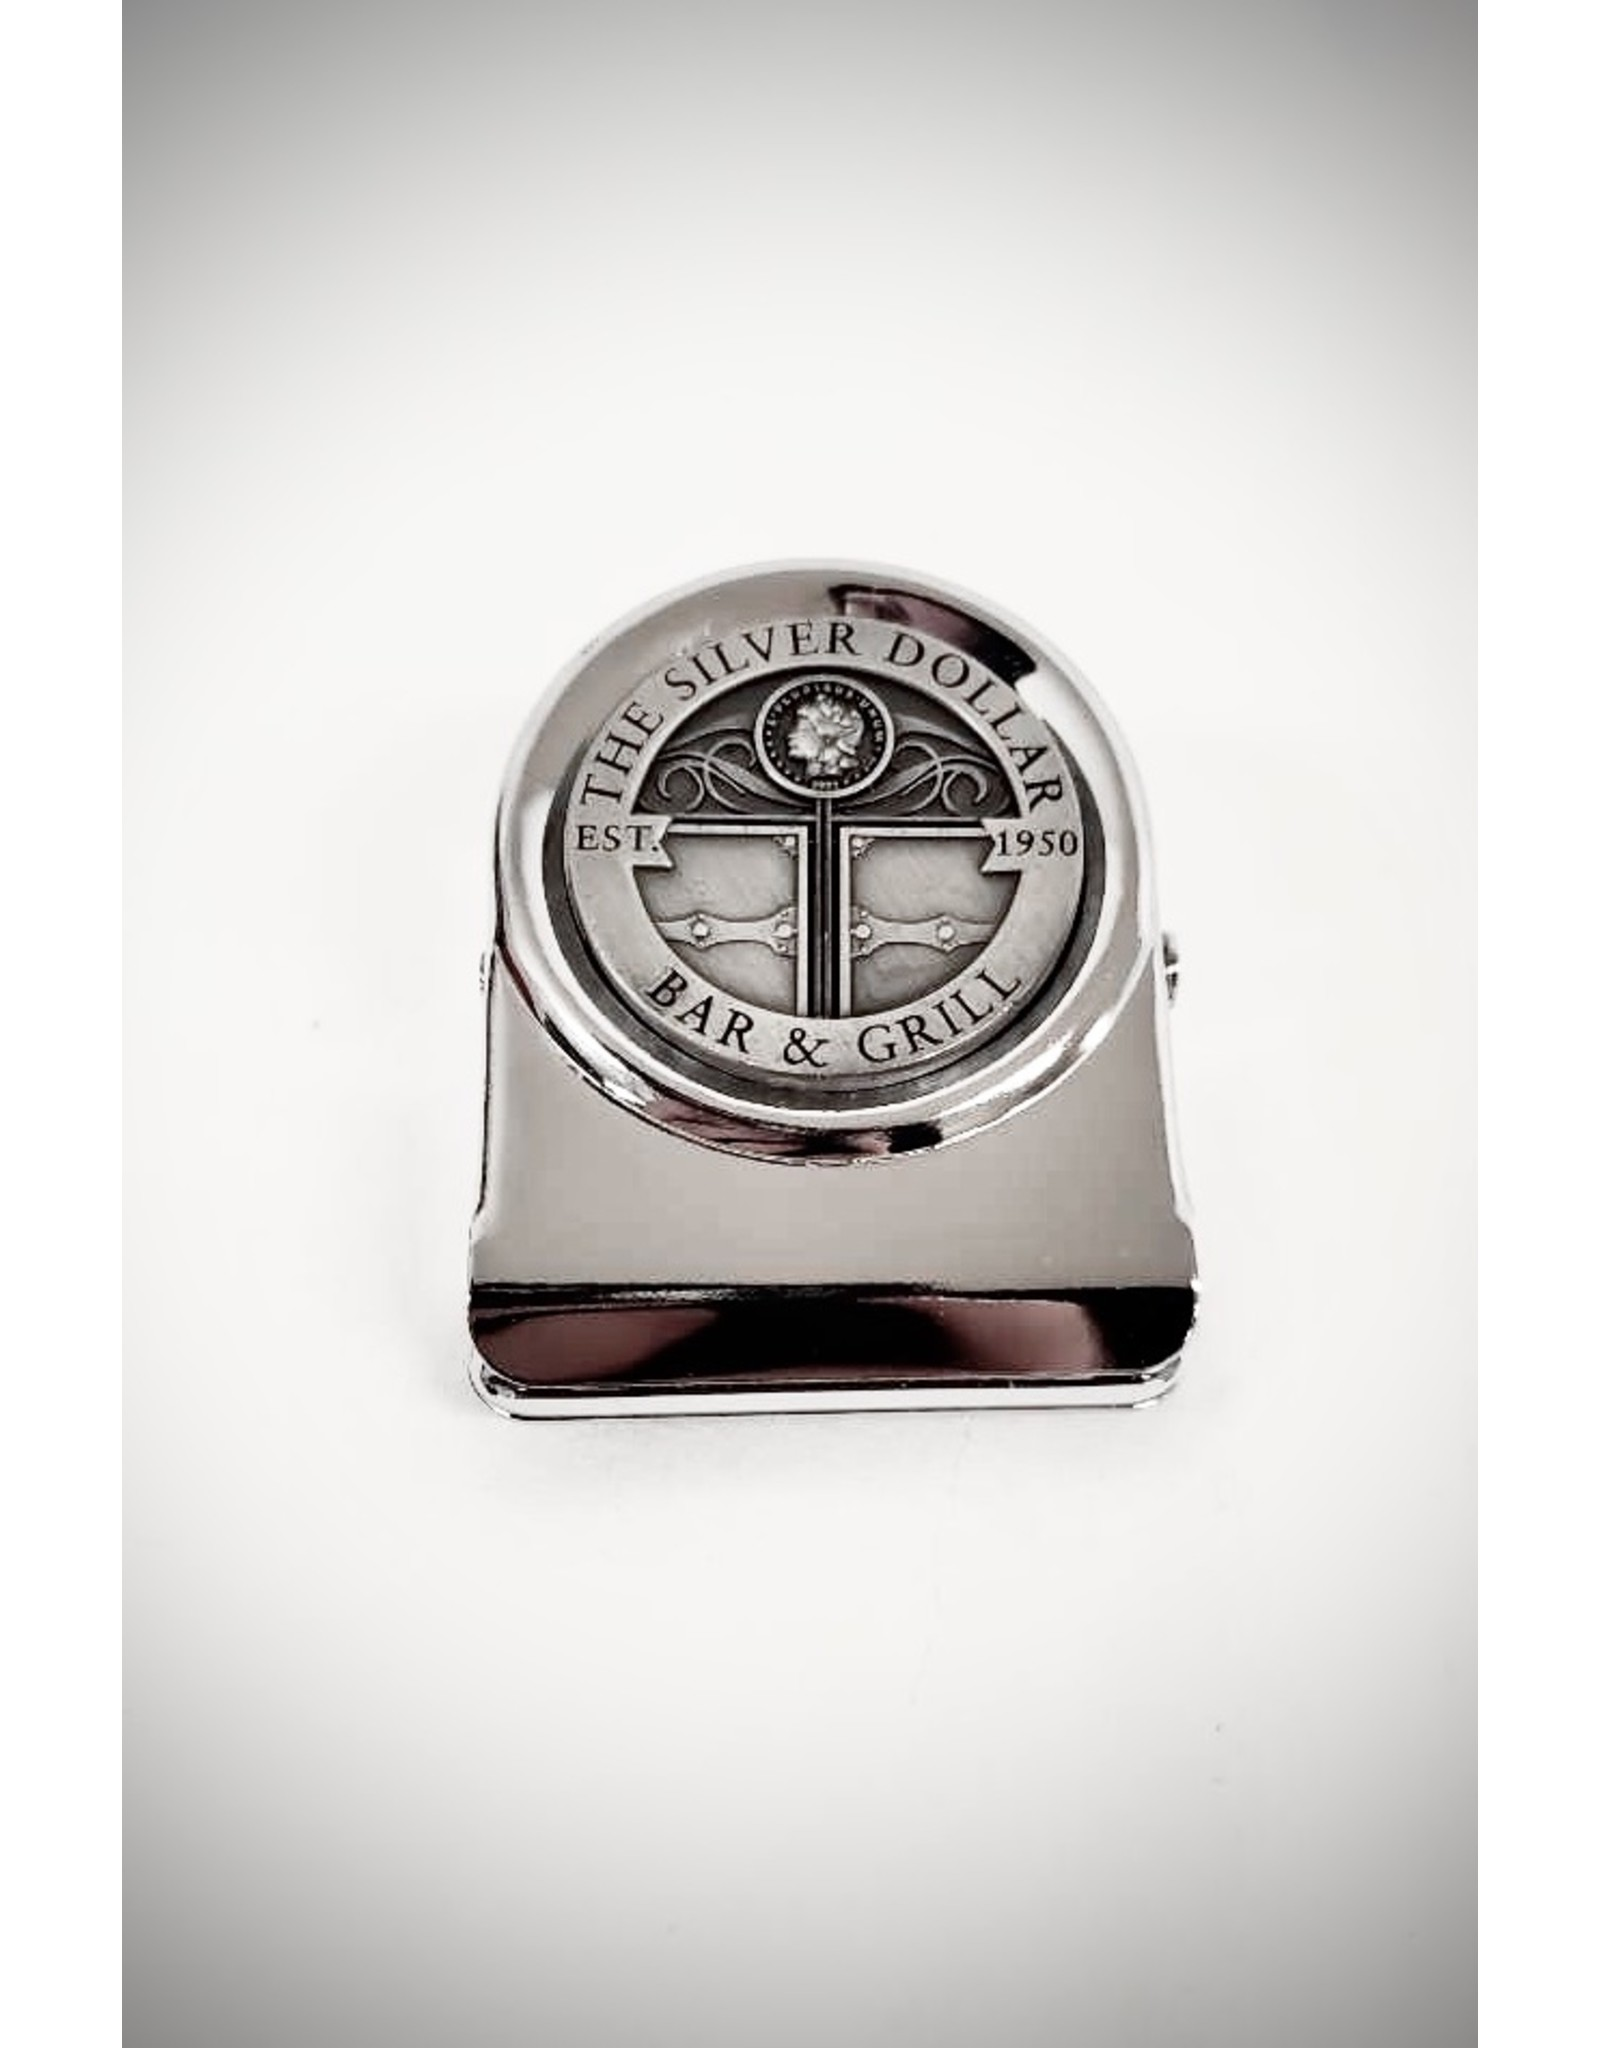 Silver Dollar Bar and Grill  Magnetic Clip